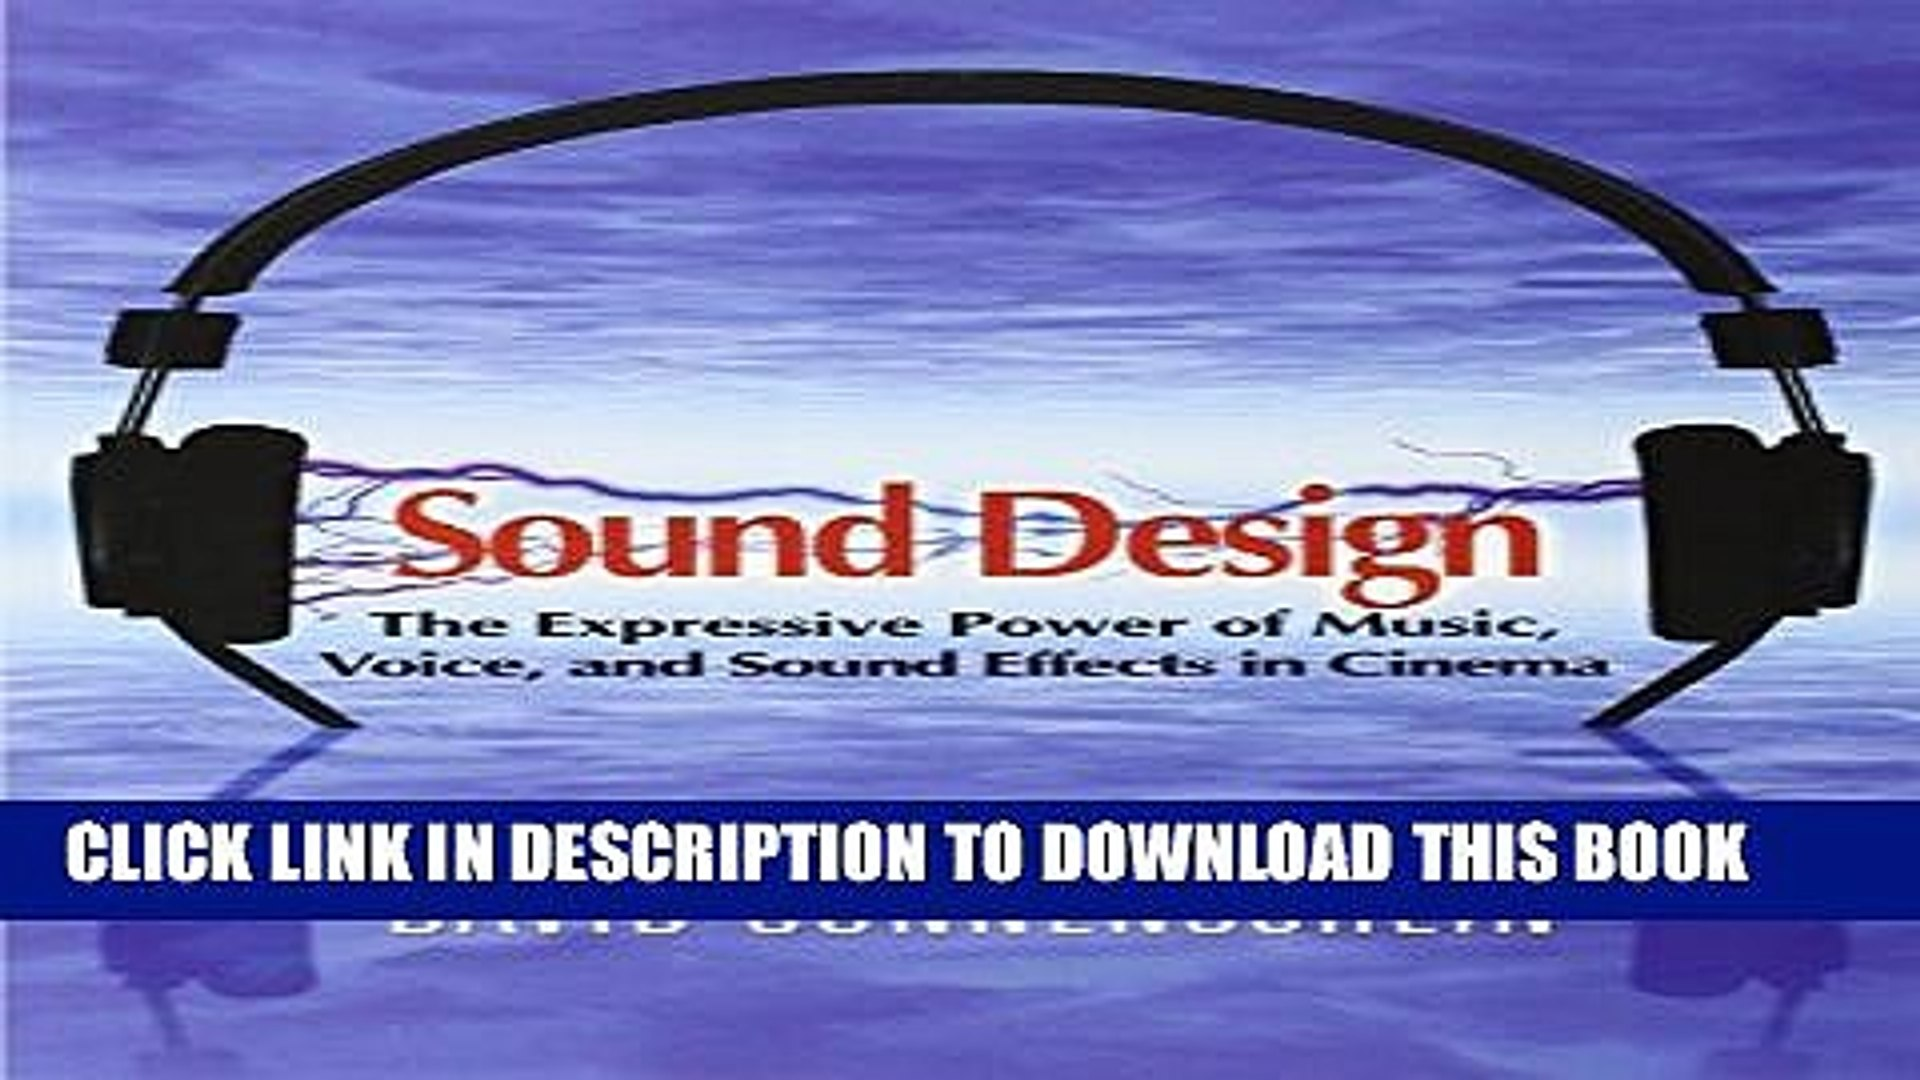 [PDF] Sound Design: The Expressive Power of Music, Voice and Sound Effects in Cinema Full Colection